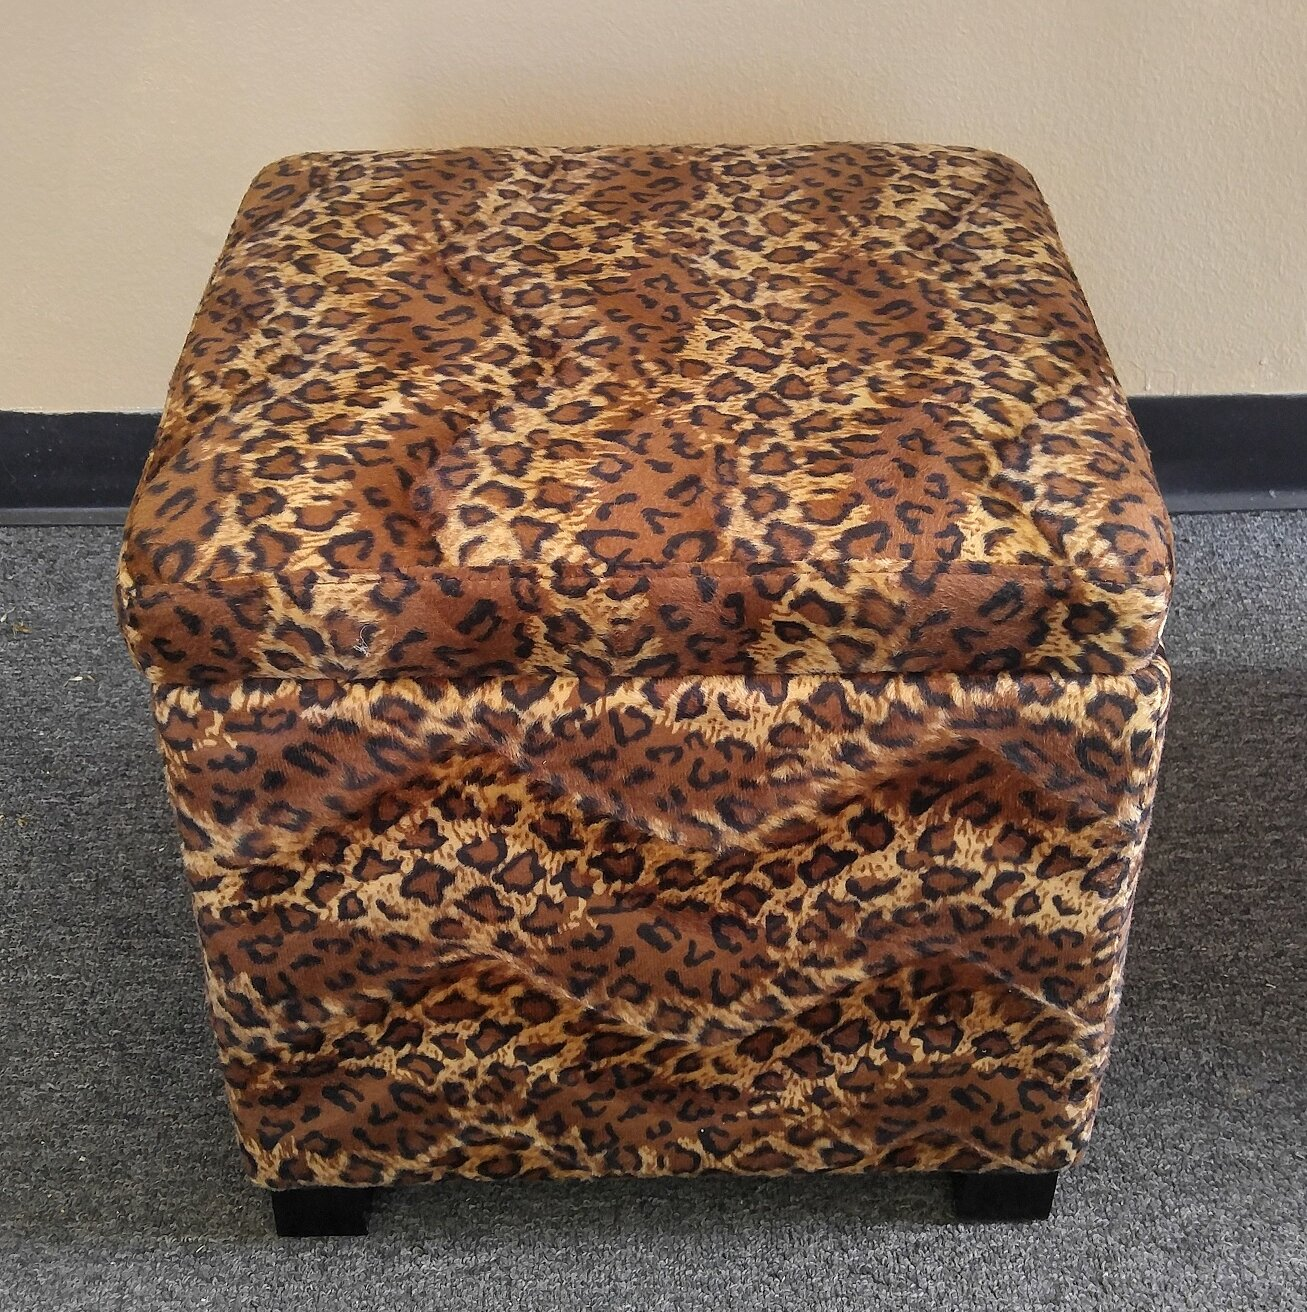 Super Leopard Storage Ottoman Gamerscity Chair Design For Home Gamerscityorg